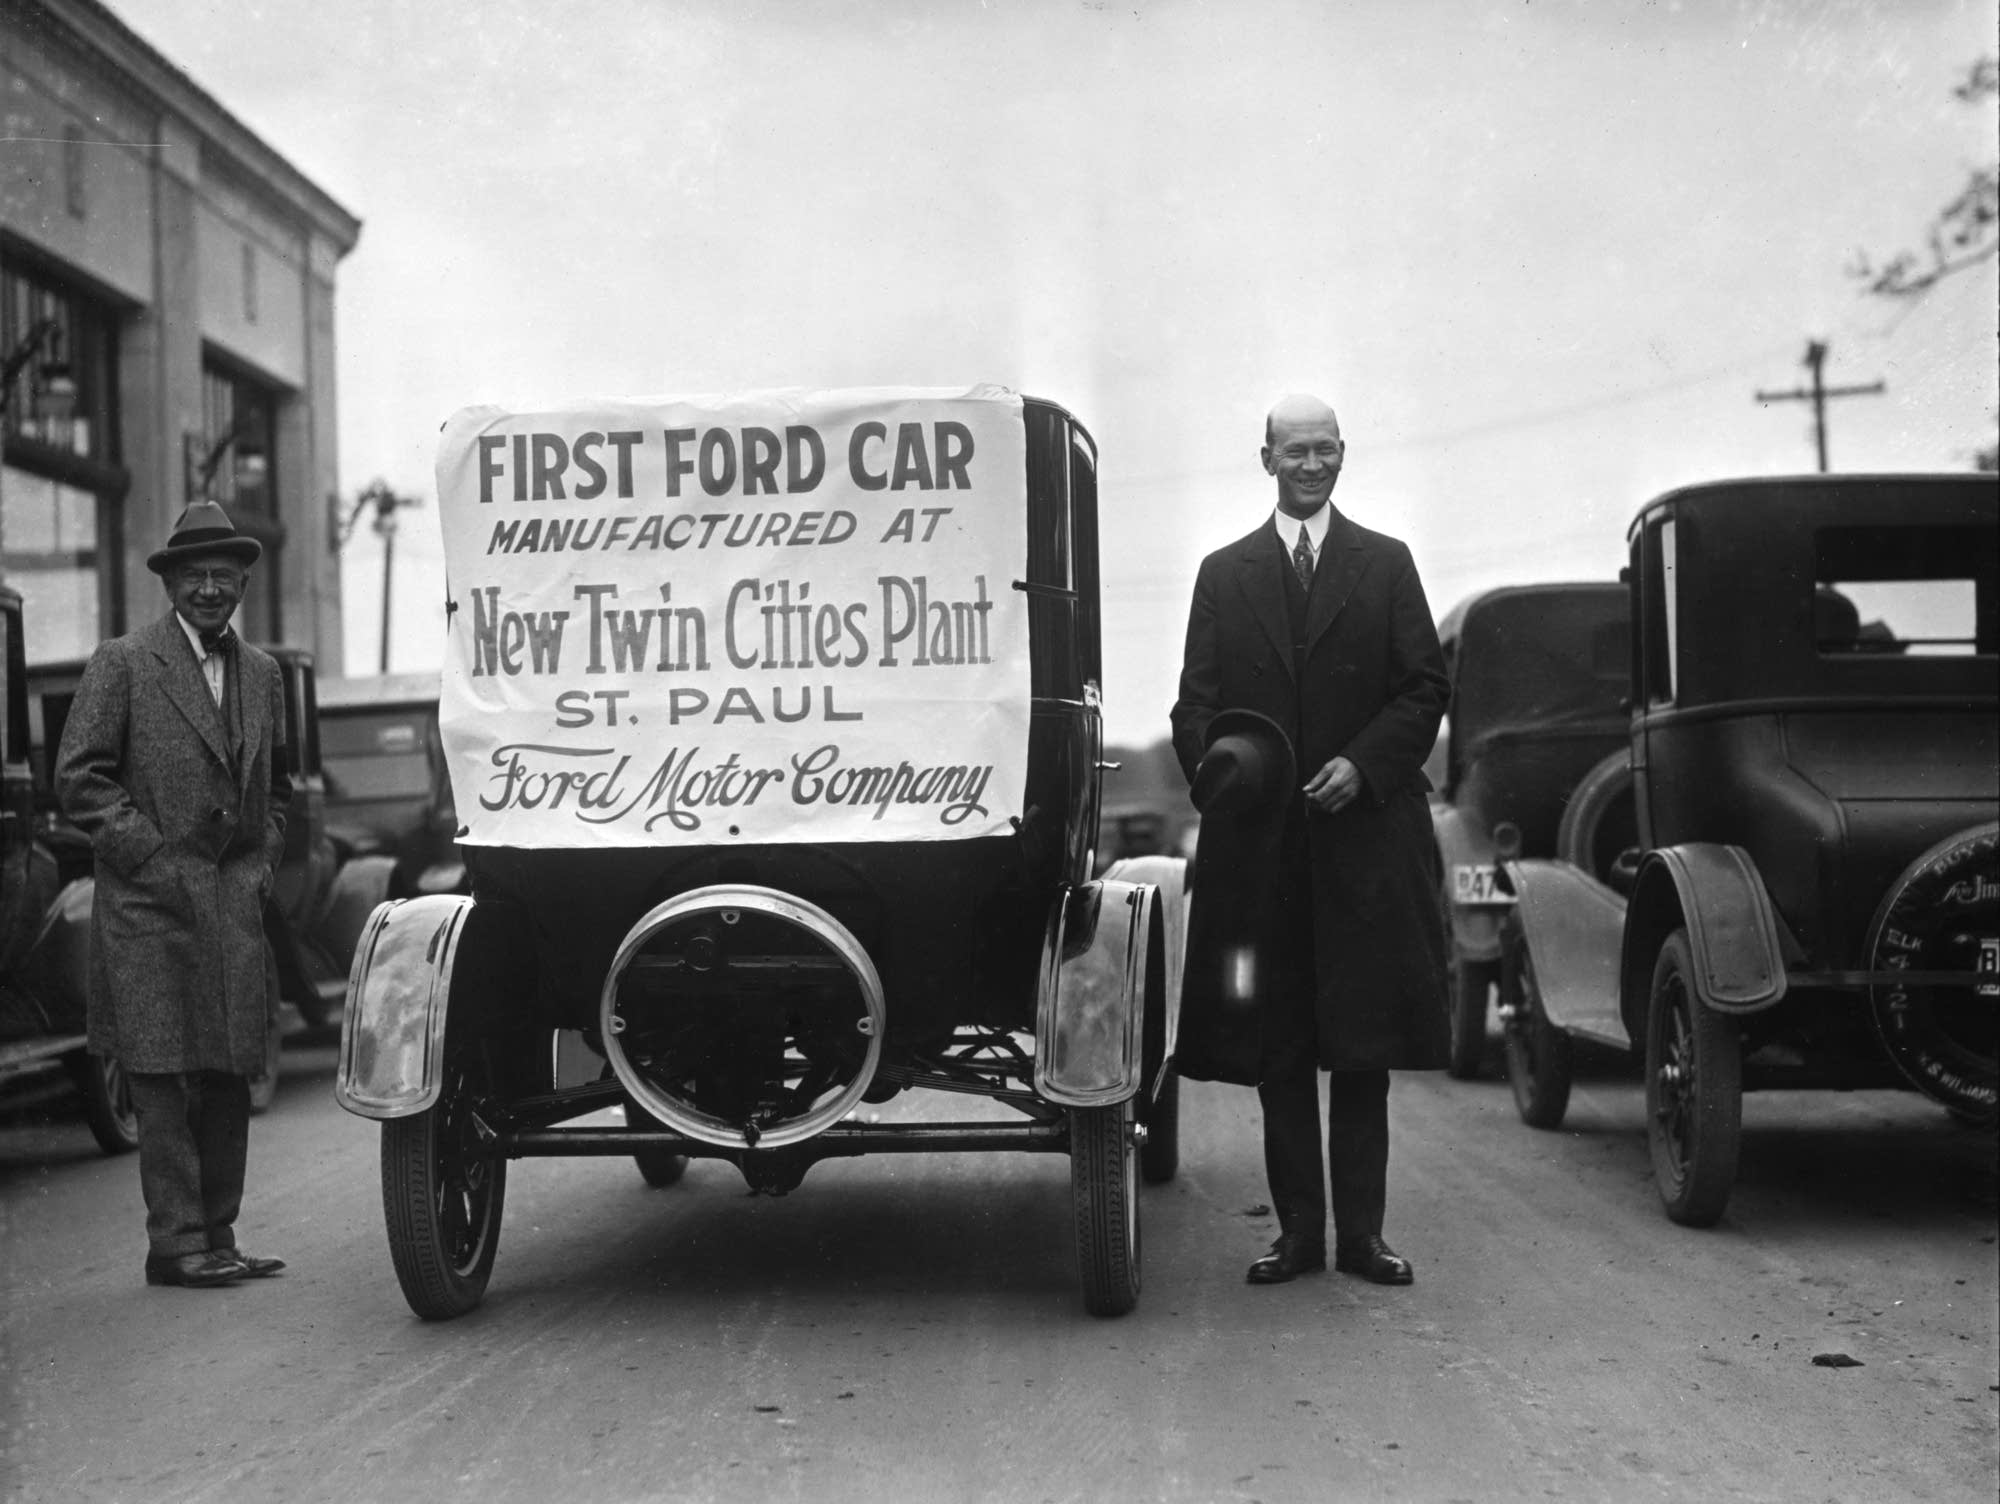 St. Paul Ford dealer W. S. Williams, 1925